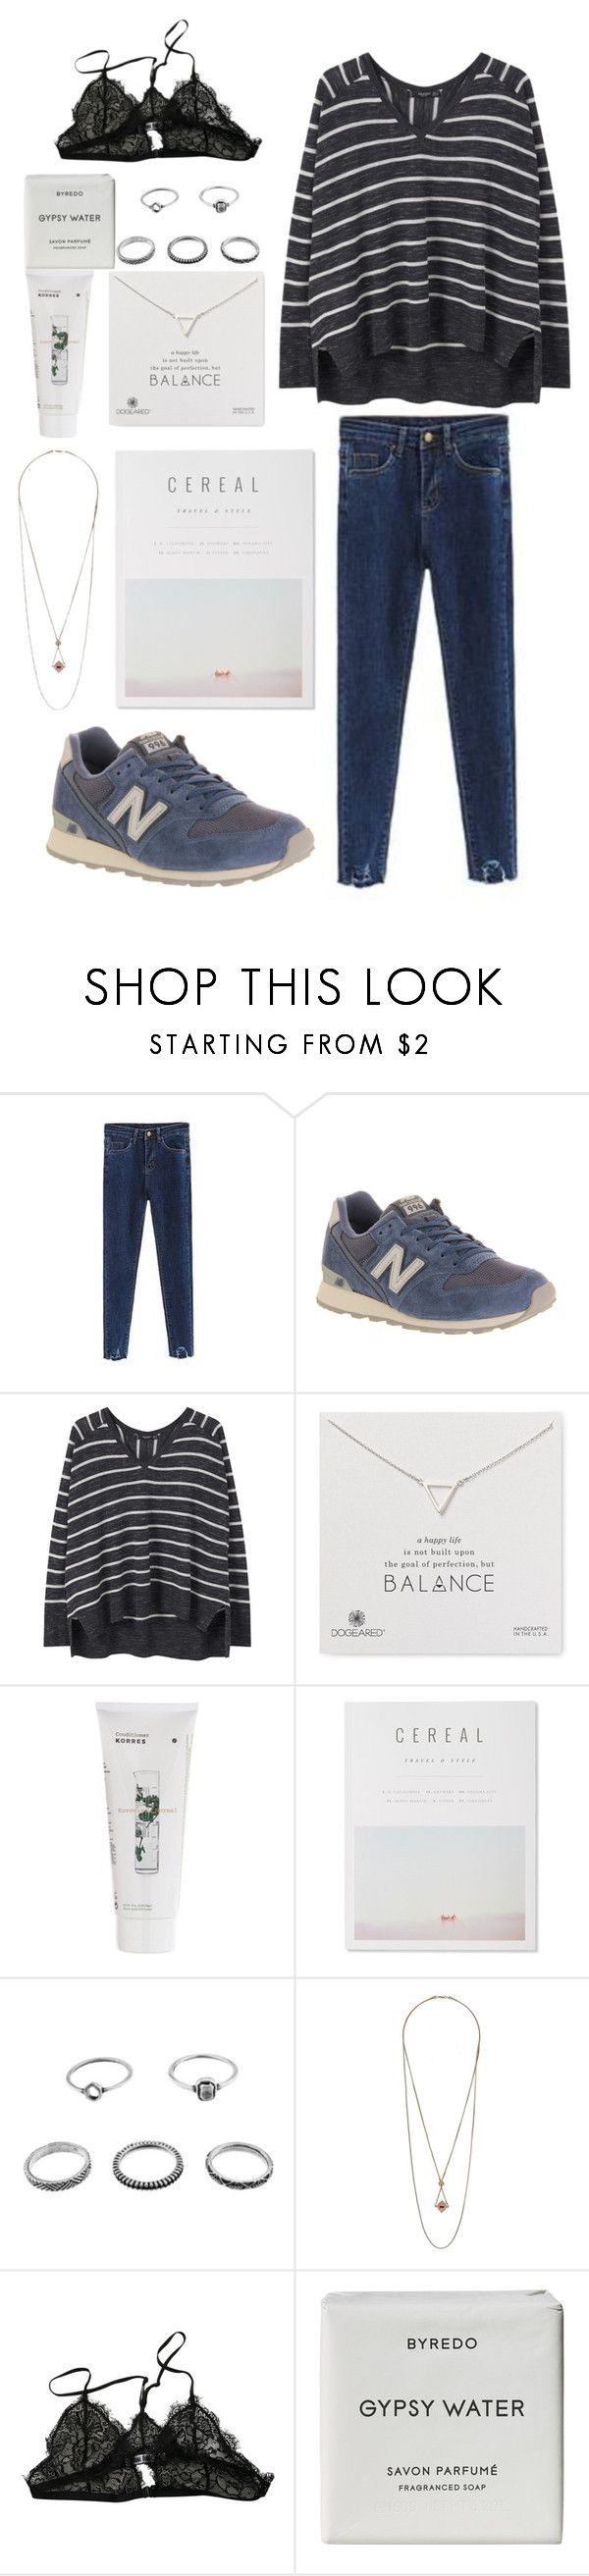 """Untitled #320"" by petitaprenent on Polyvore featuring moda, New Balance, MANGO, Dogeared, Korres, Topshop, Anine Bing y Byredo"